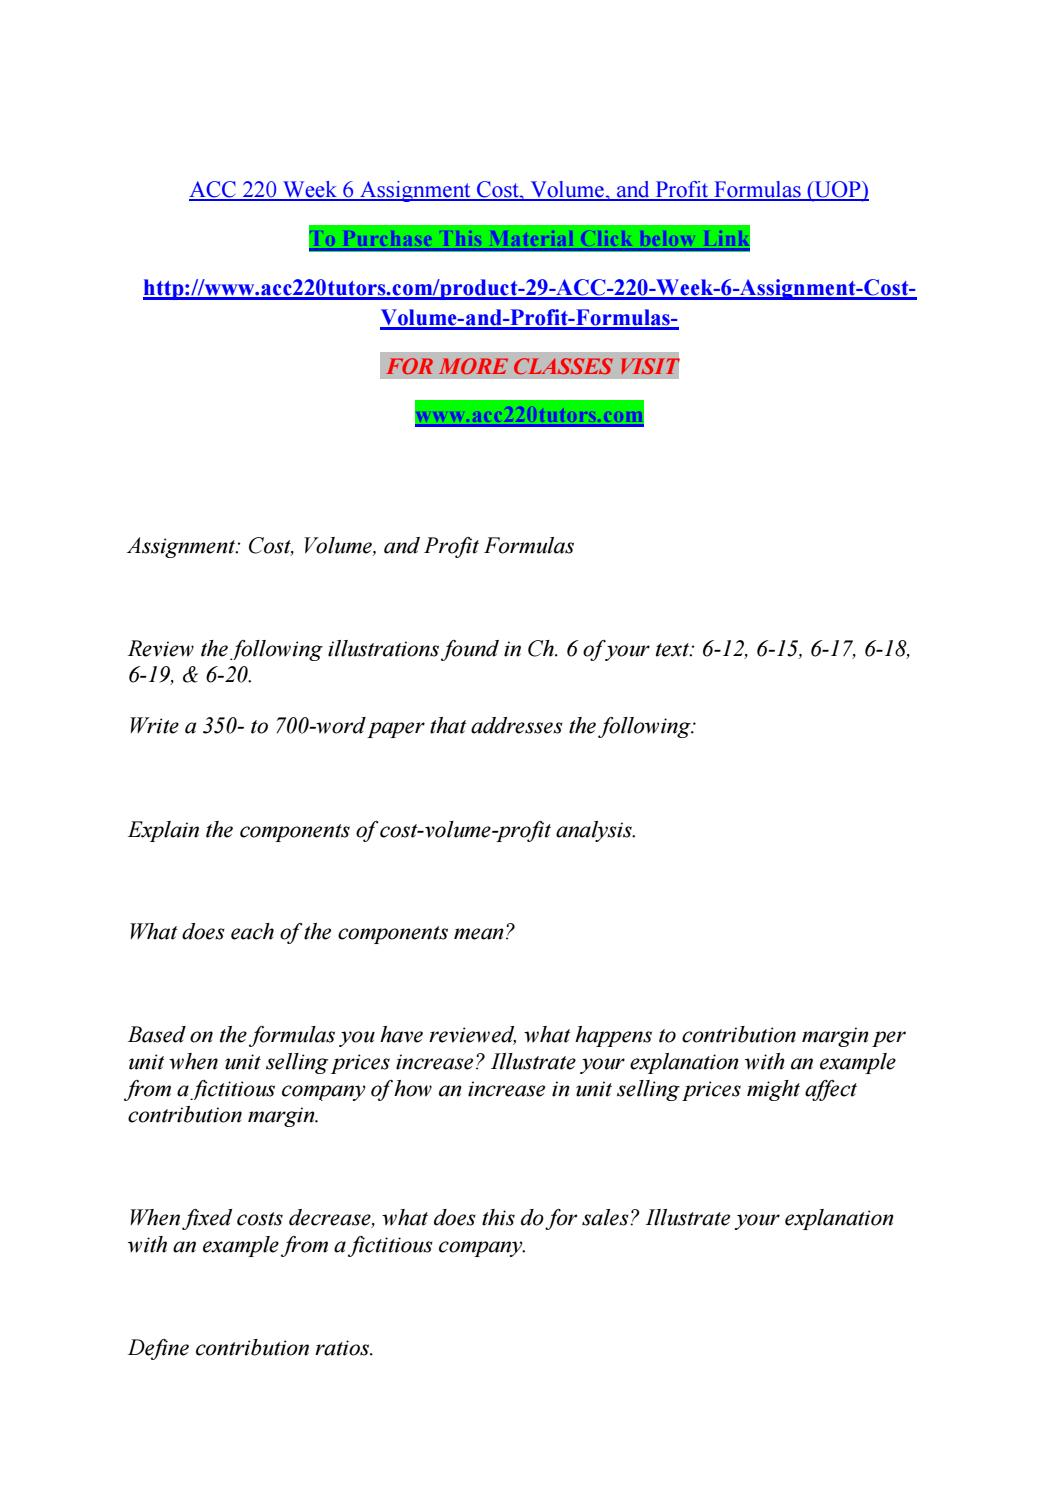 Acc 220 week 6 assignment cost, volume, and profit formulas (uop) by